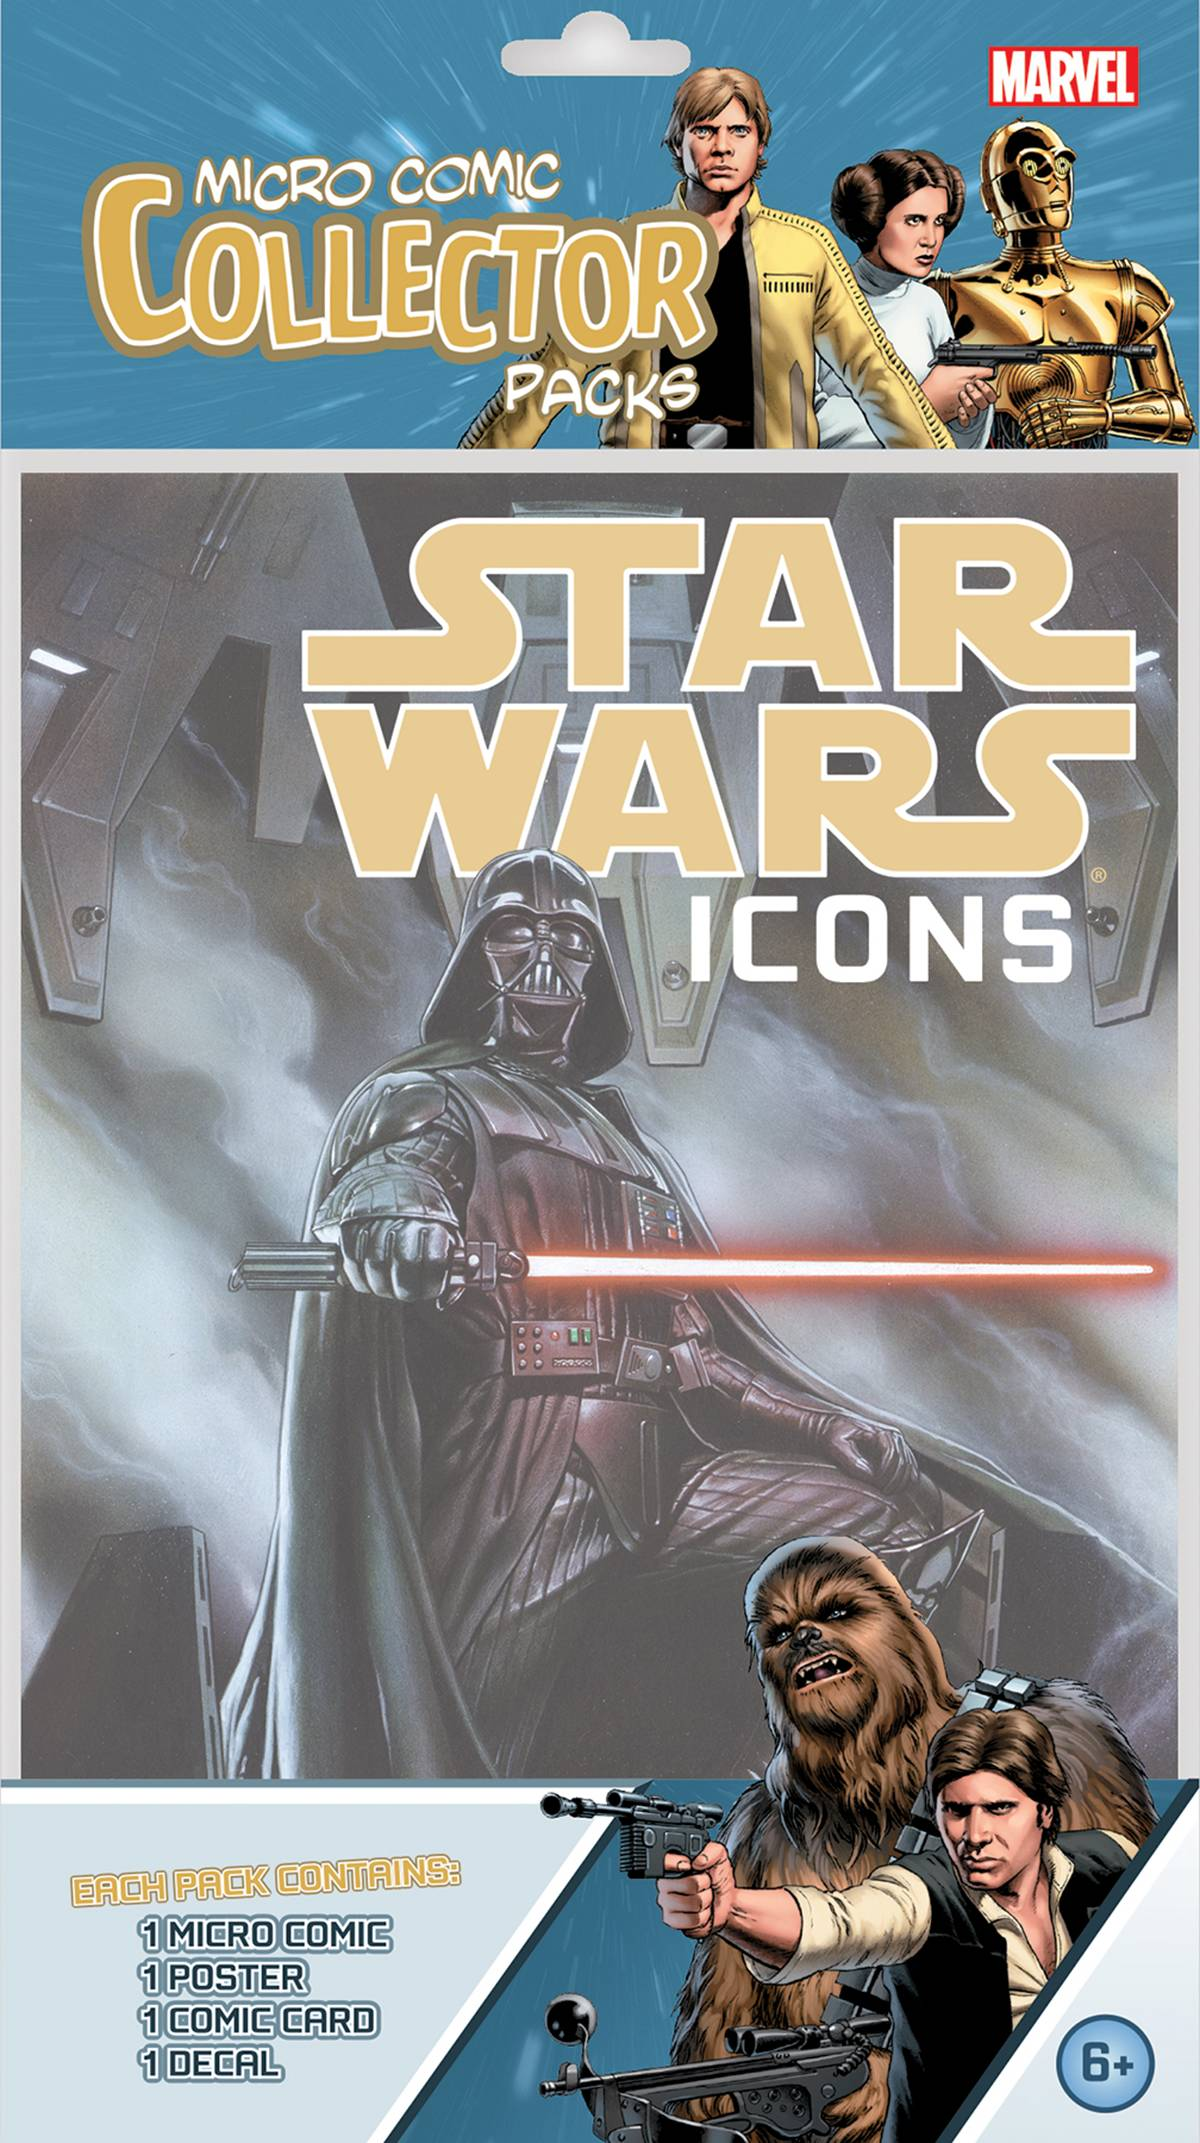 STAR WARS ICONS MICRO COLLECTOR PACK